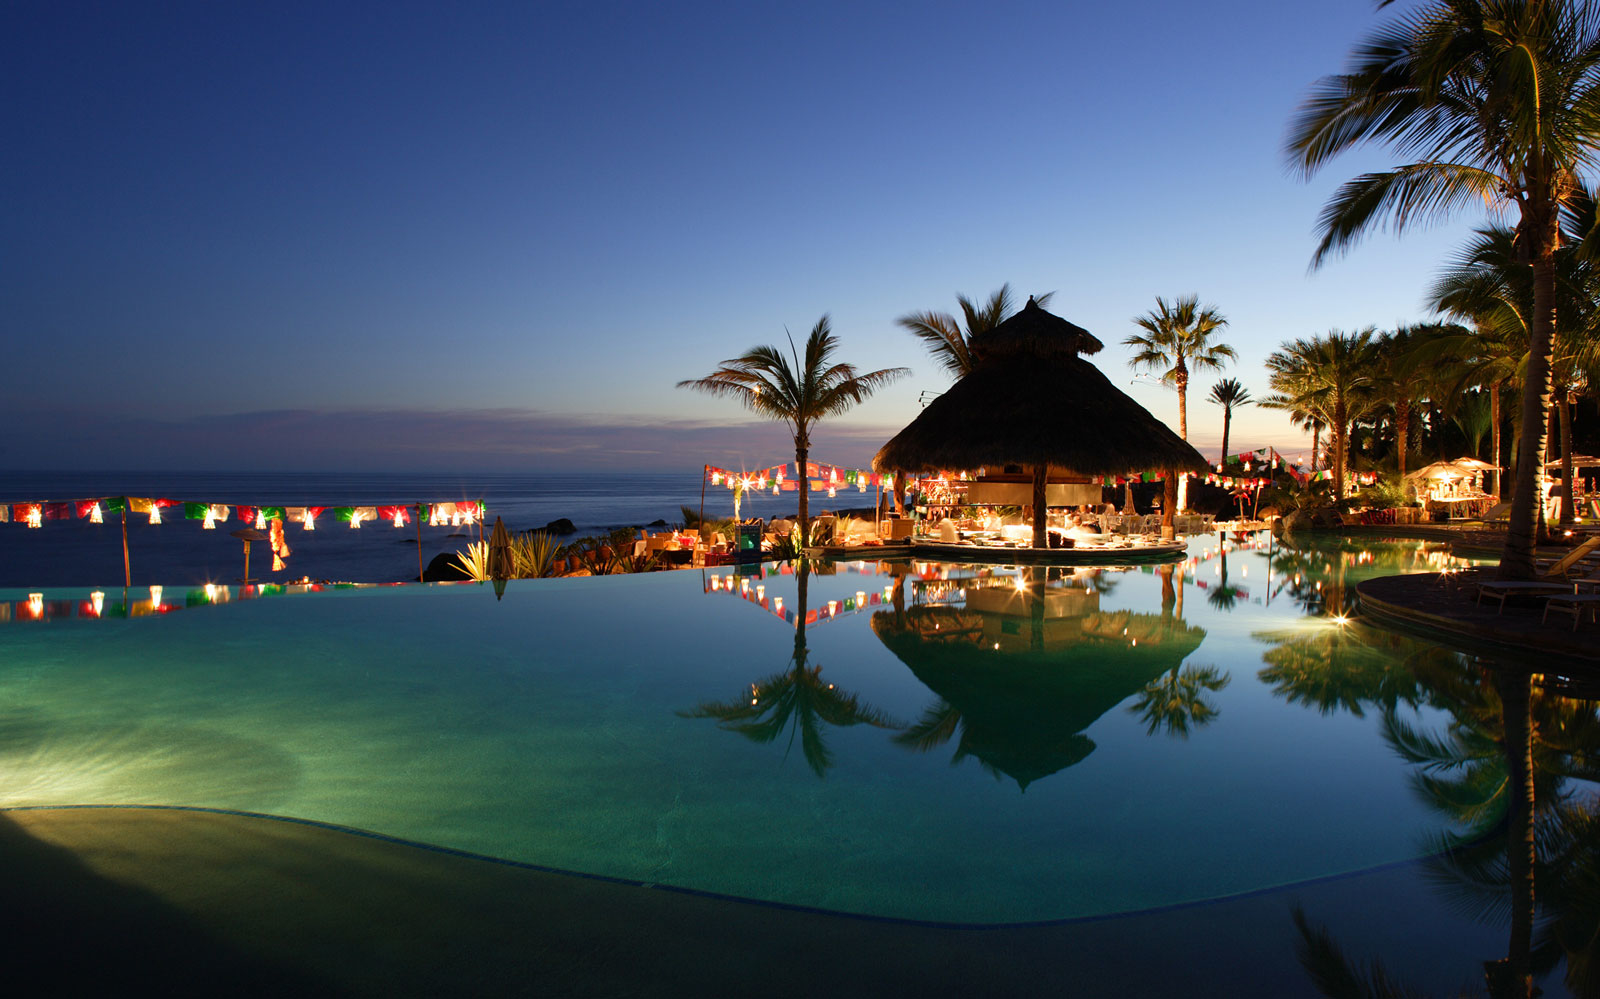 Esperanza Swim-up Bar in Cabo San Lucas, Mexico